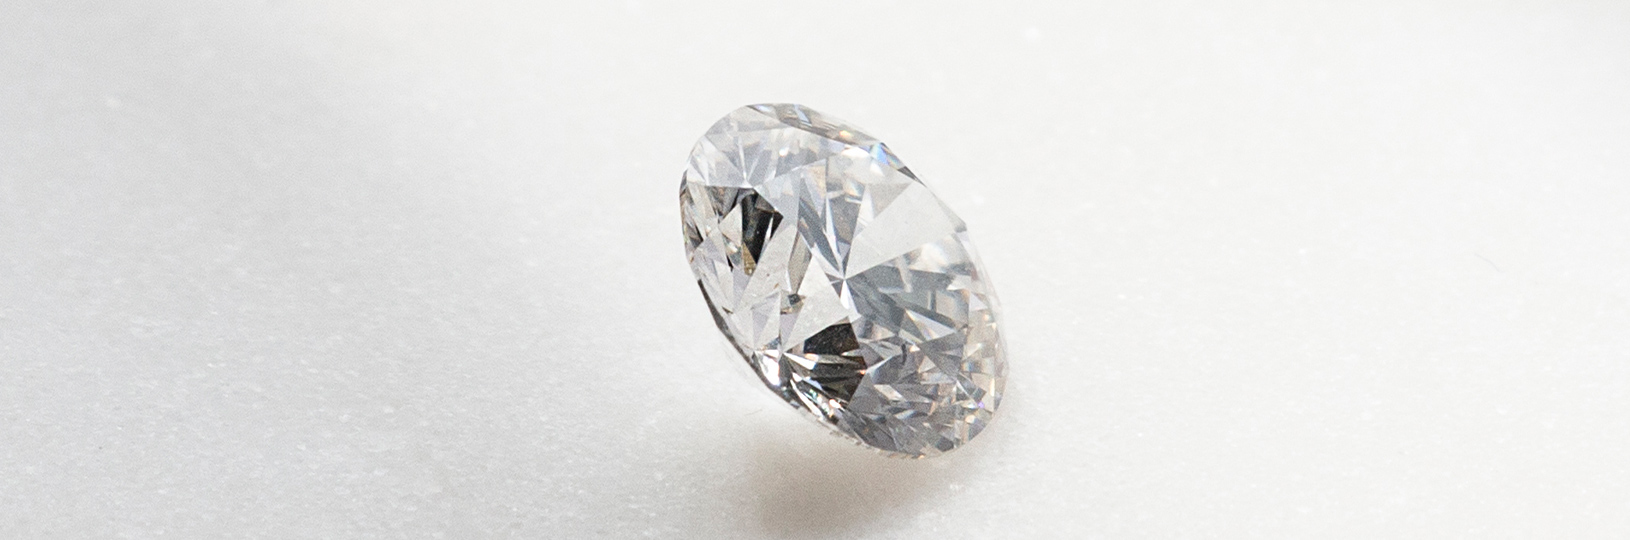 Close up image of an oval cut lab grown diamond